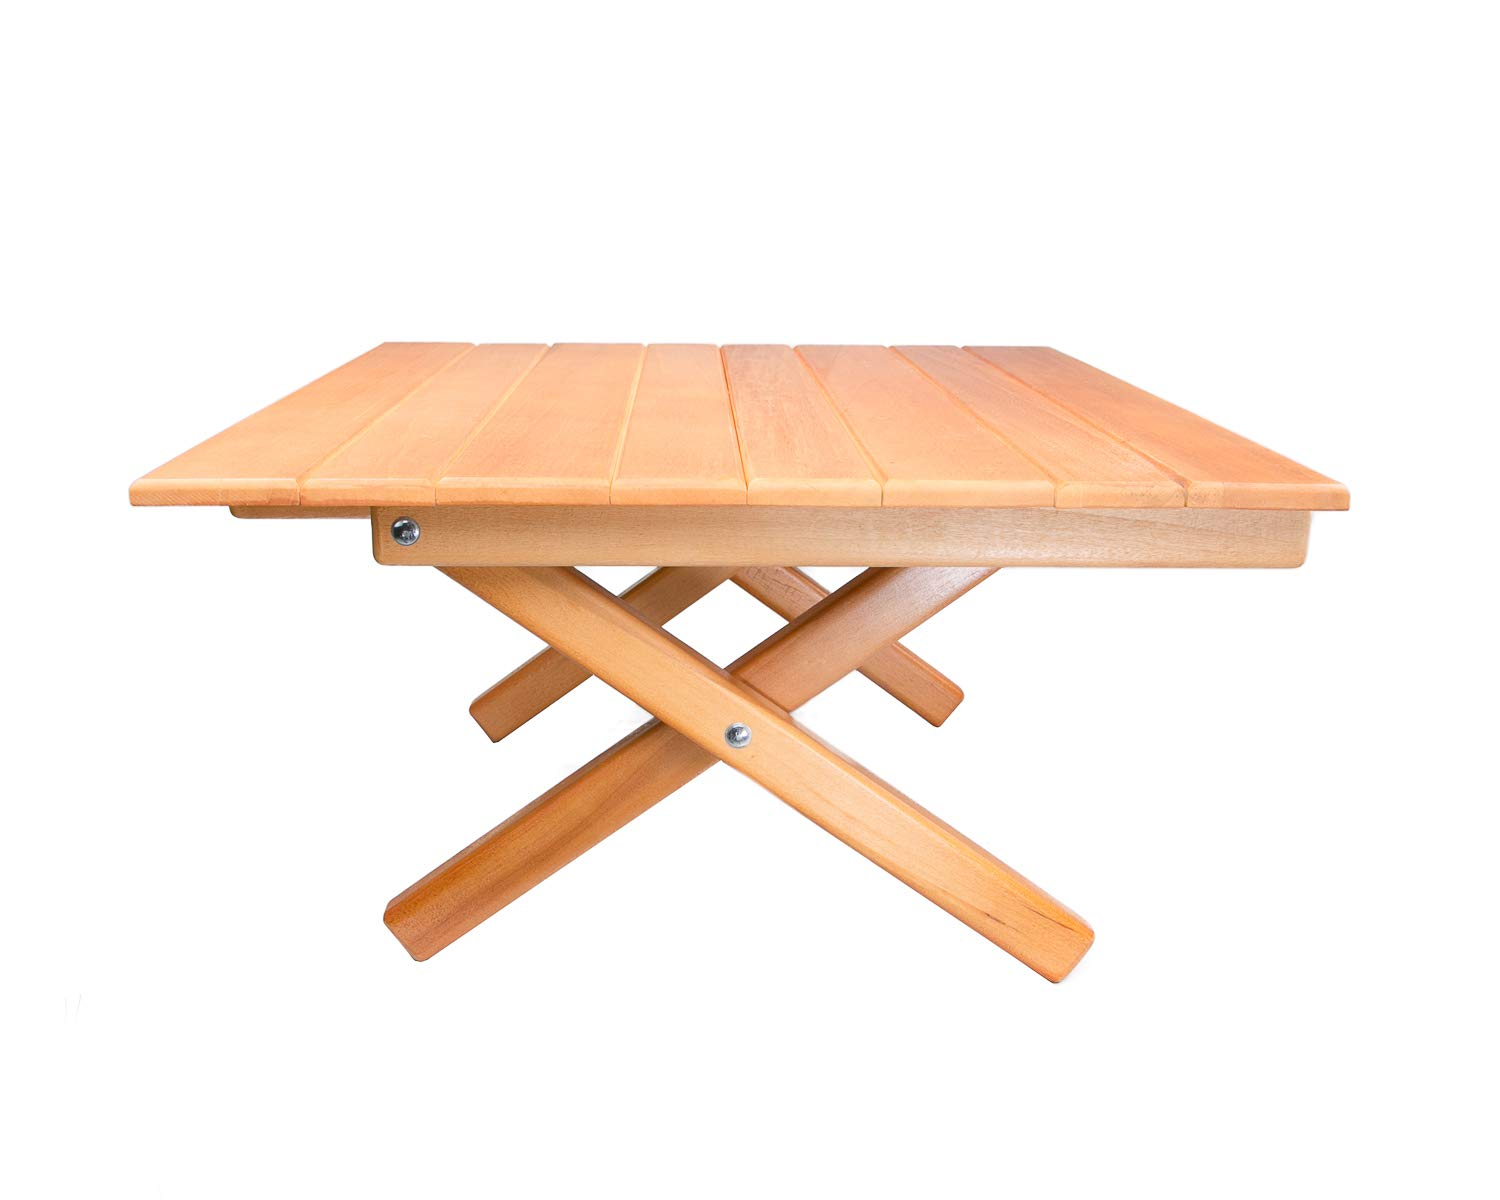 Simple Setup Short Table All-Purpose Use and Portability - Beach, Picnic, Camp, Or Patio Table - All Wood Strong Table (Height 10'') by SHORT TABLE